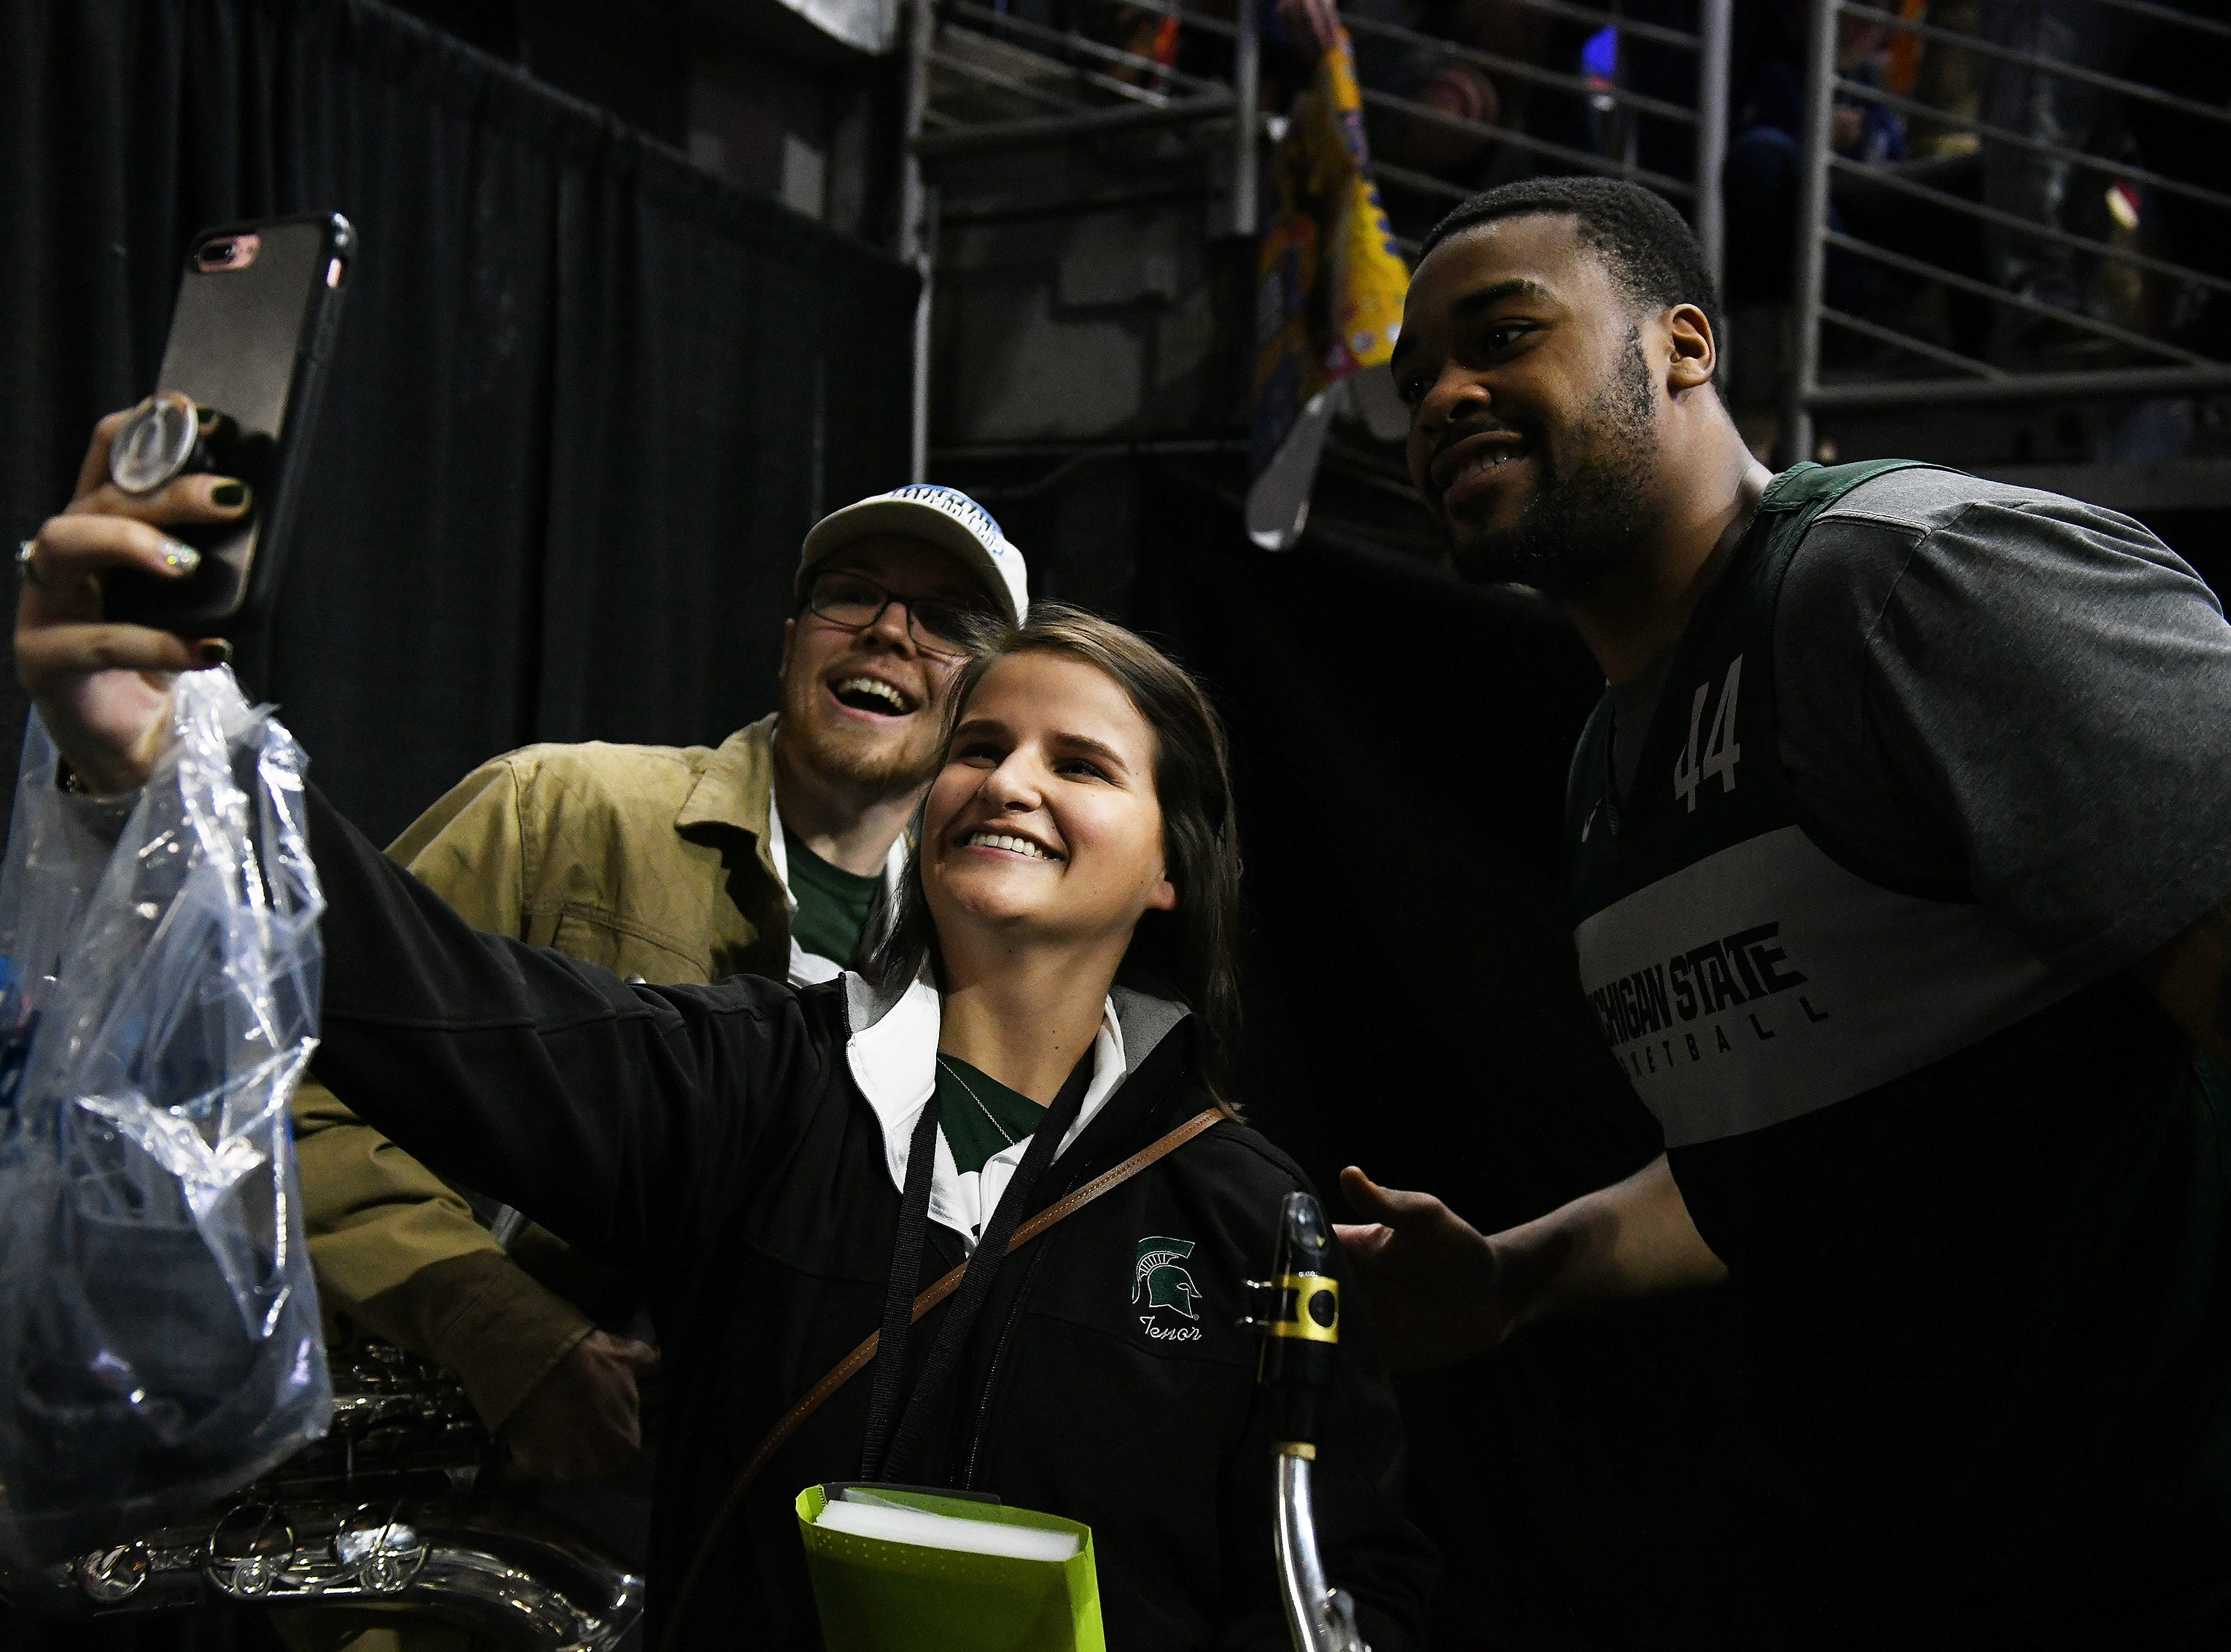 Michigan State forward Nick Ward stops to take a photo with band members, Taylor Even and Sven Adriaens, left, after Michigan State practice.